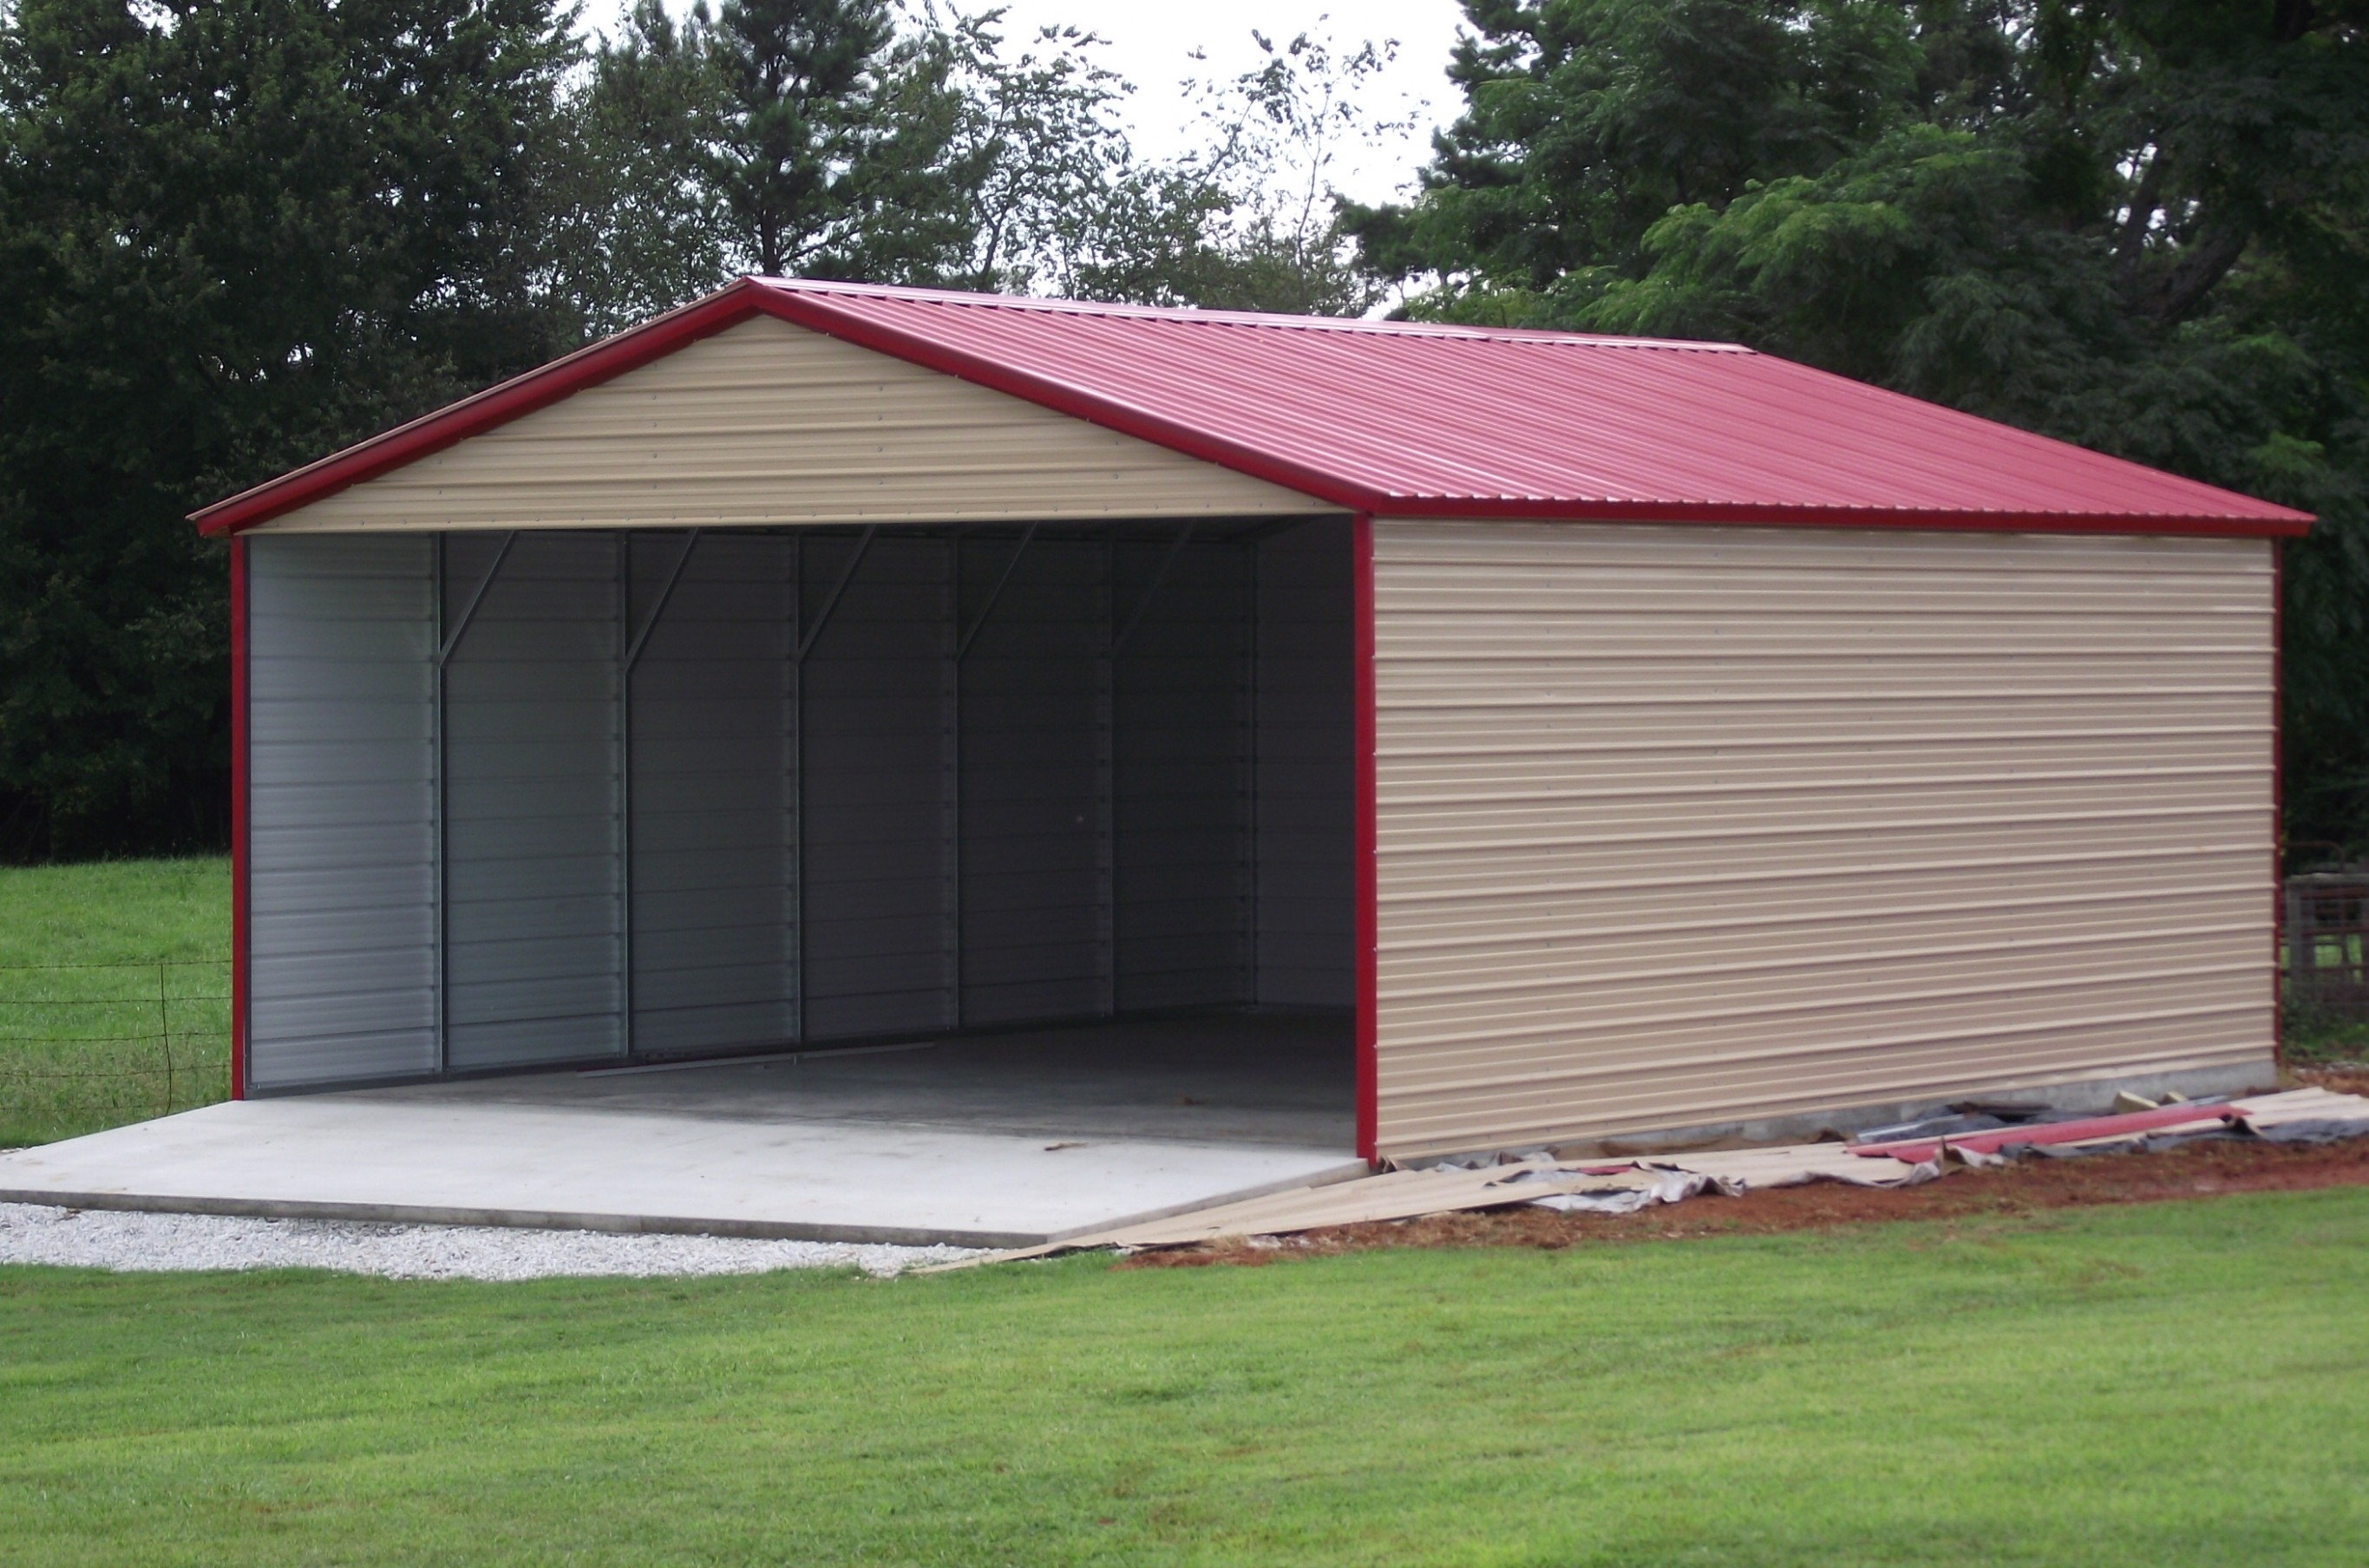 8 Doubts You Should Clarify About Tnt Carports | tnt carports